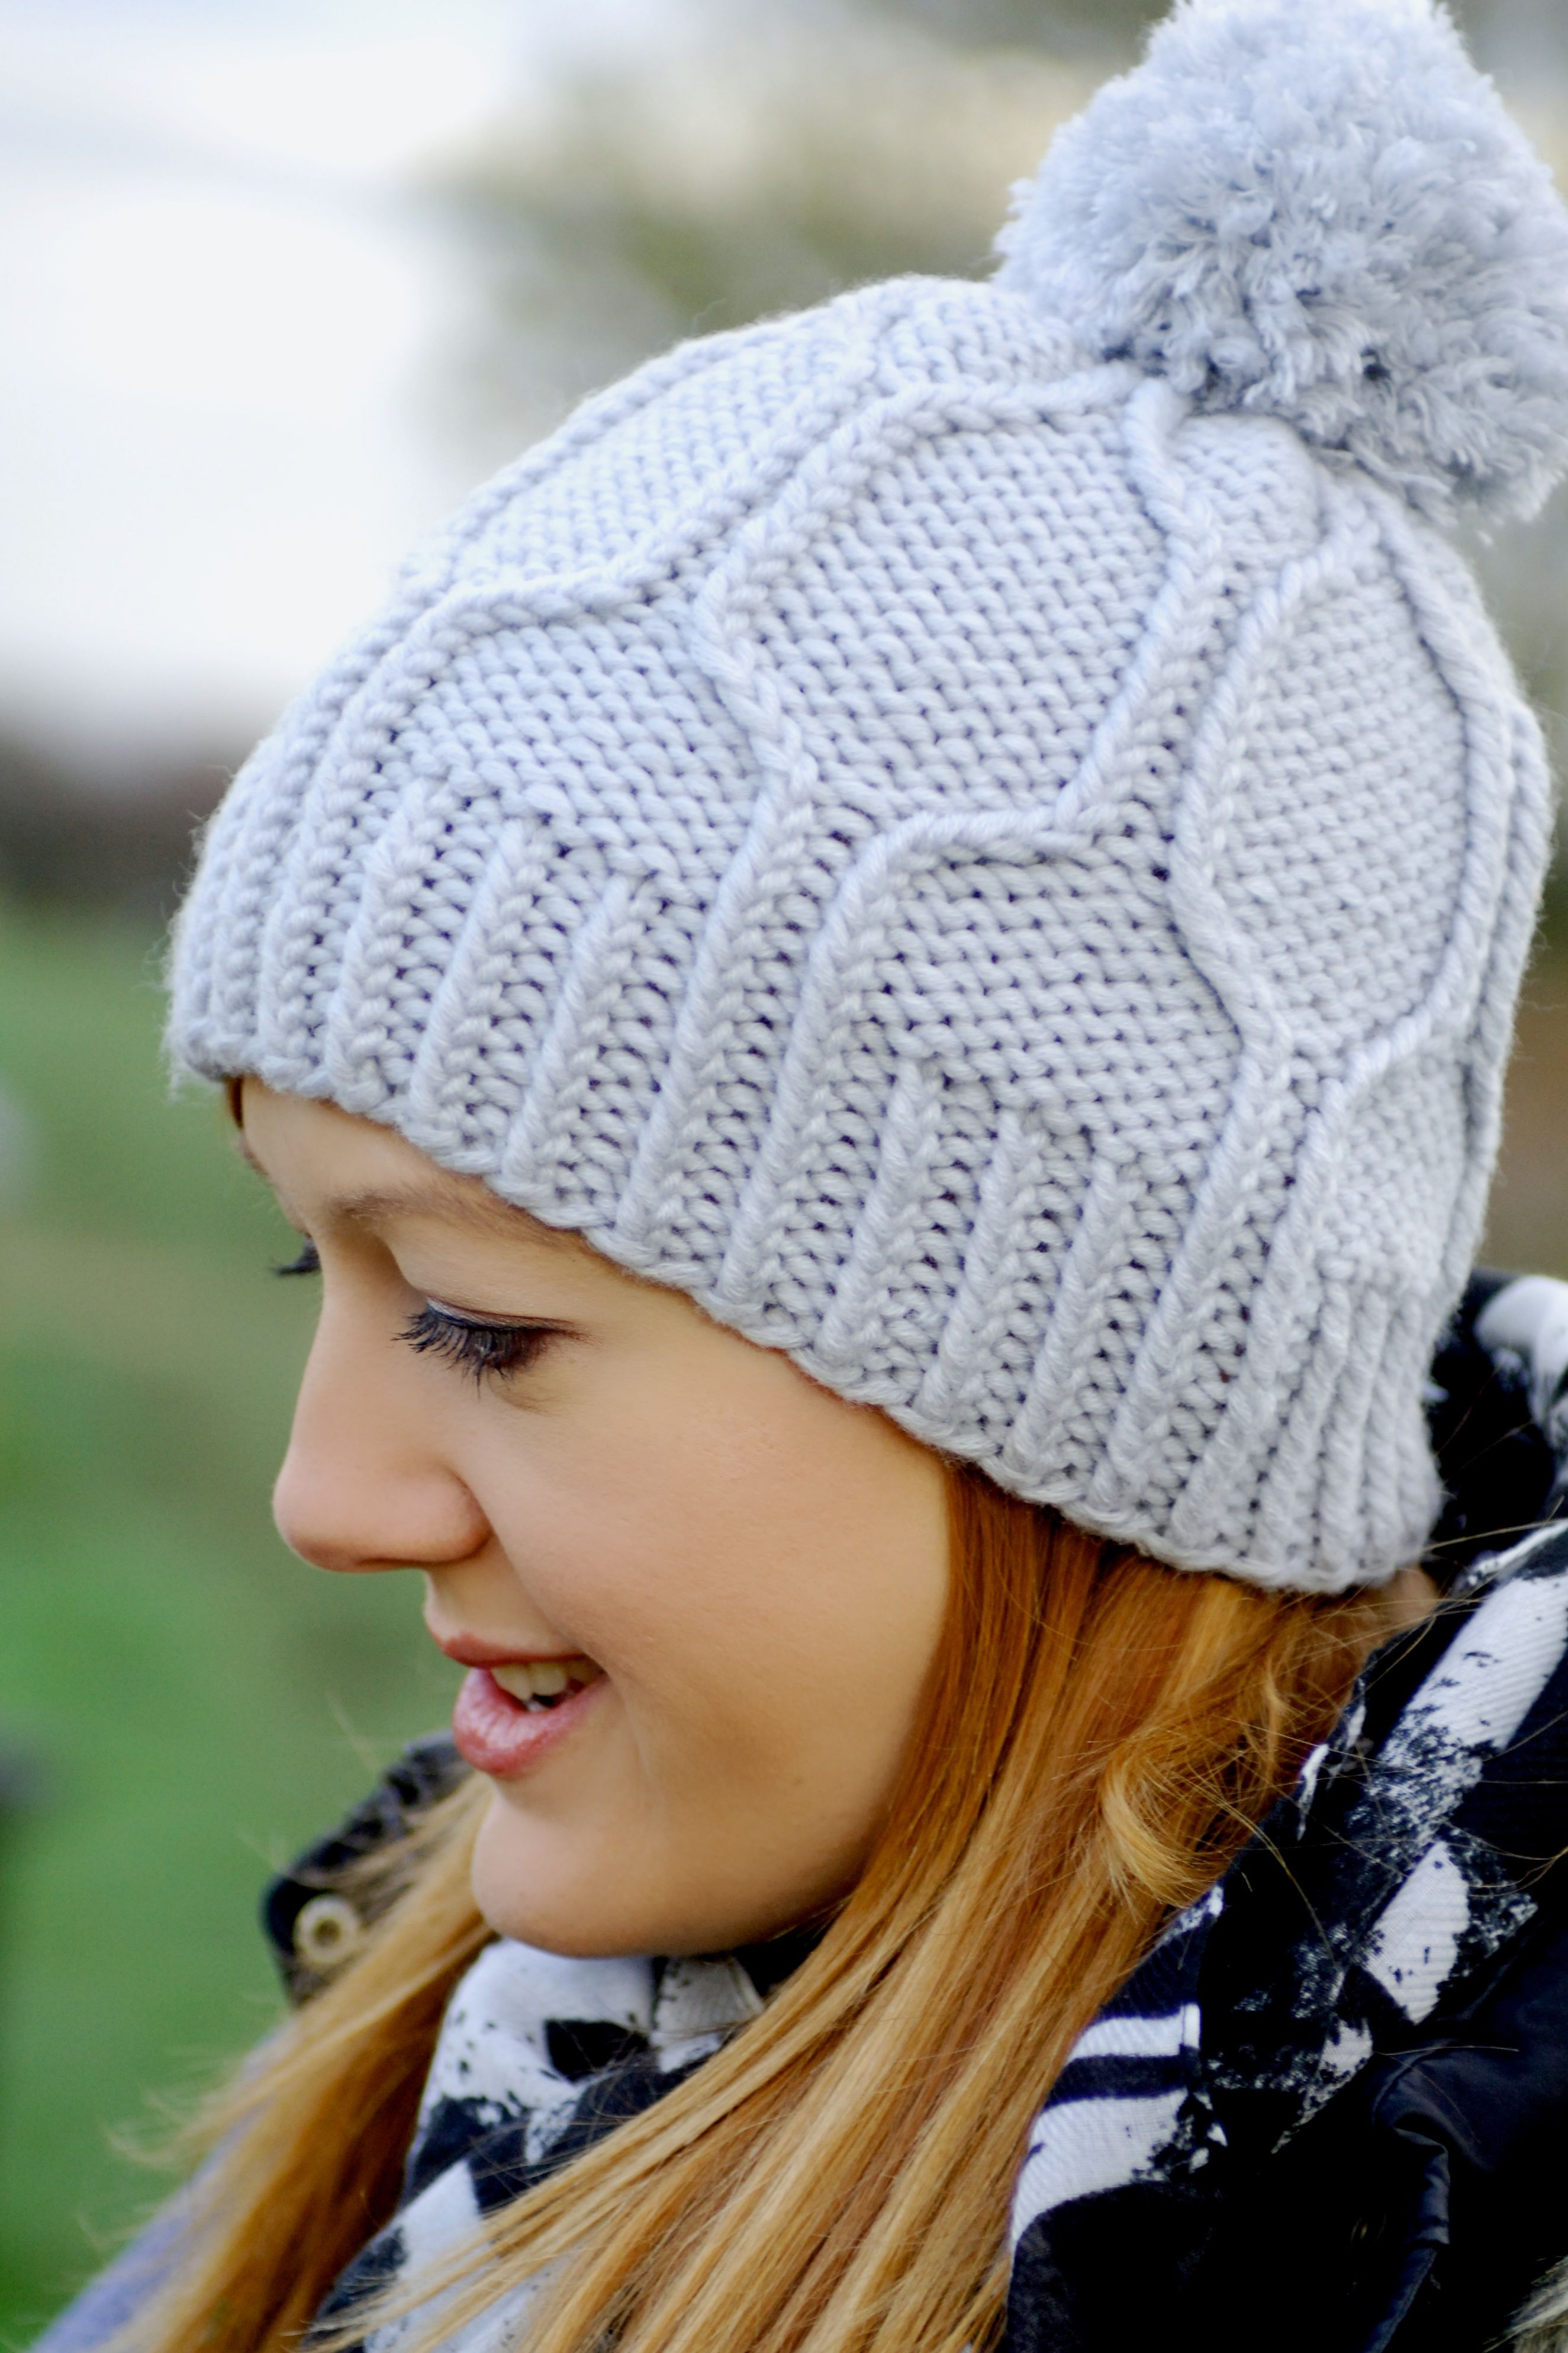 Pipe dreams pattern by natalie jubb pipe dream wool yarn and pipe dreams a new hat knitting pattern from natalie jubb designs a super bankloansurffo Gallery